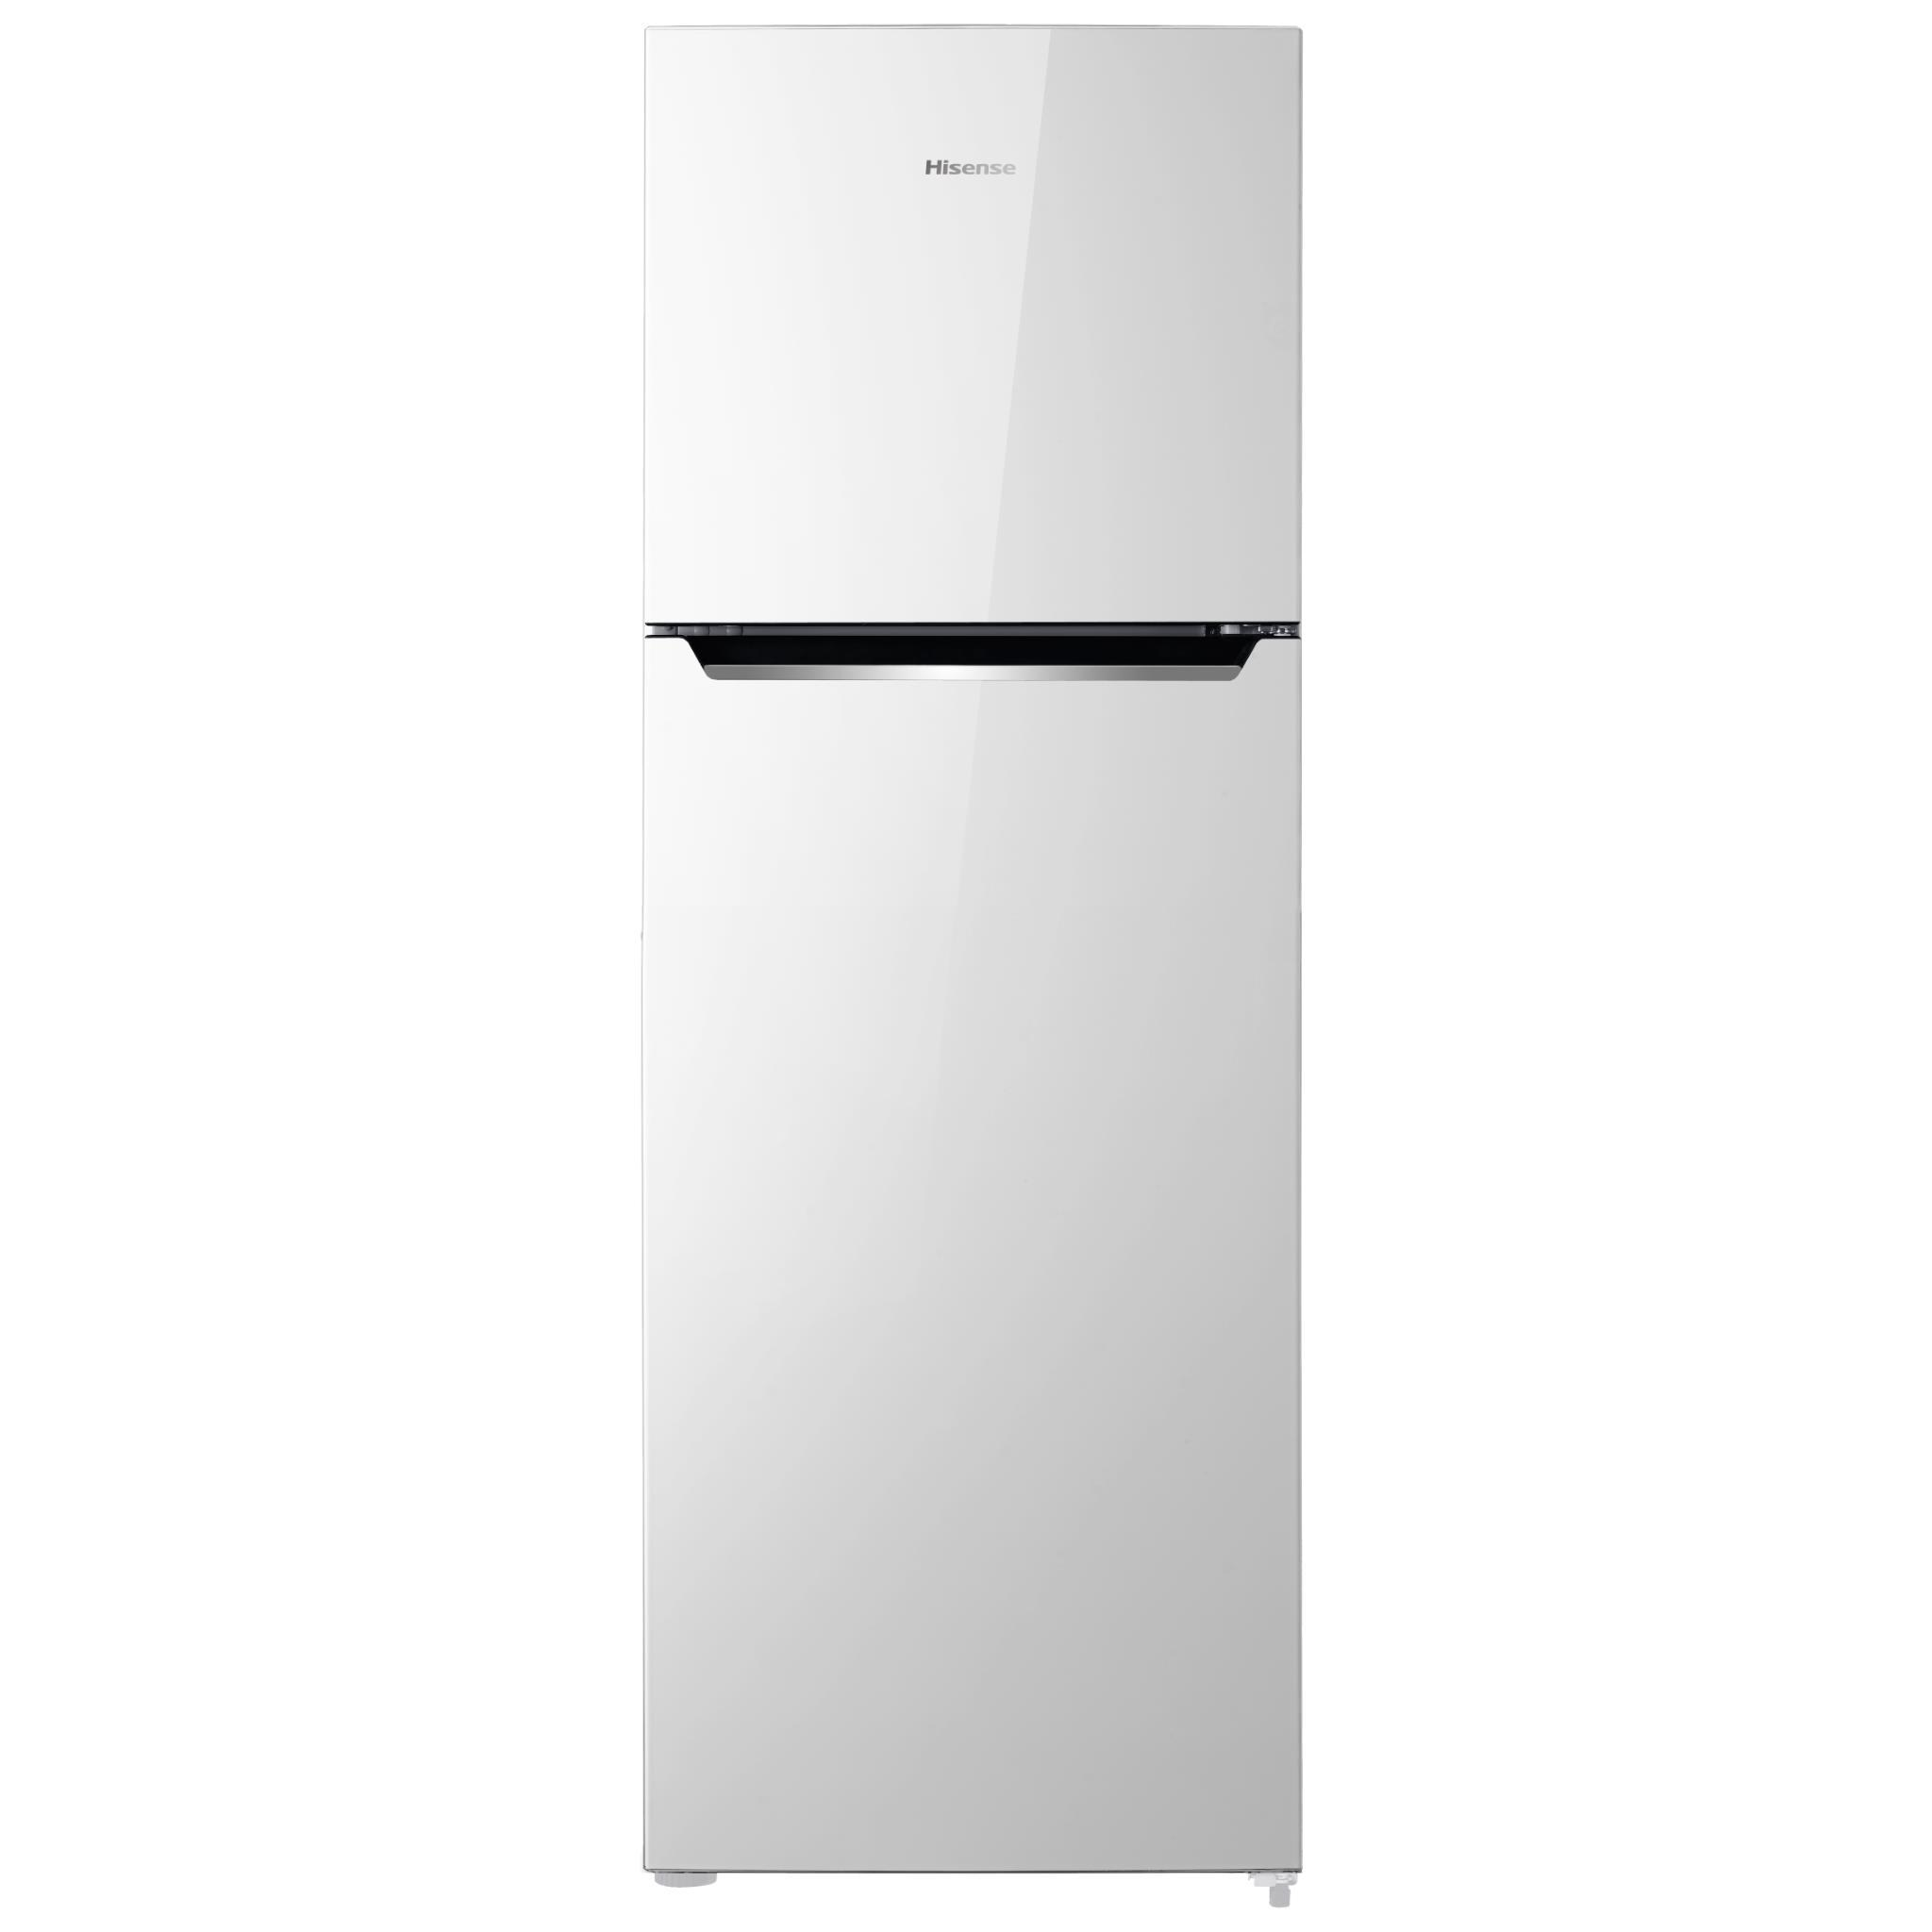 Hisense HR6TFF350 350L Top Mount Fridge (White)